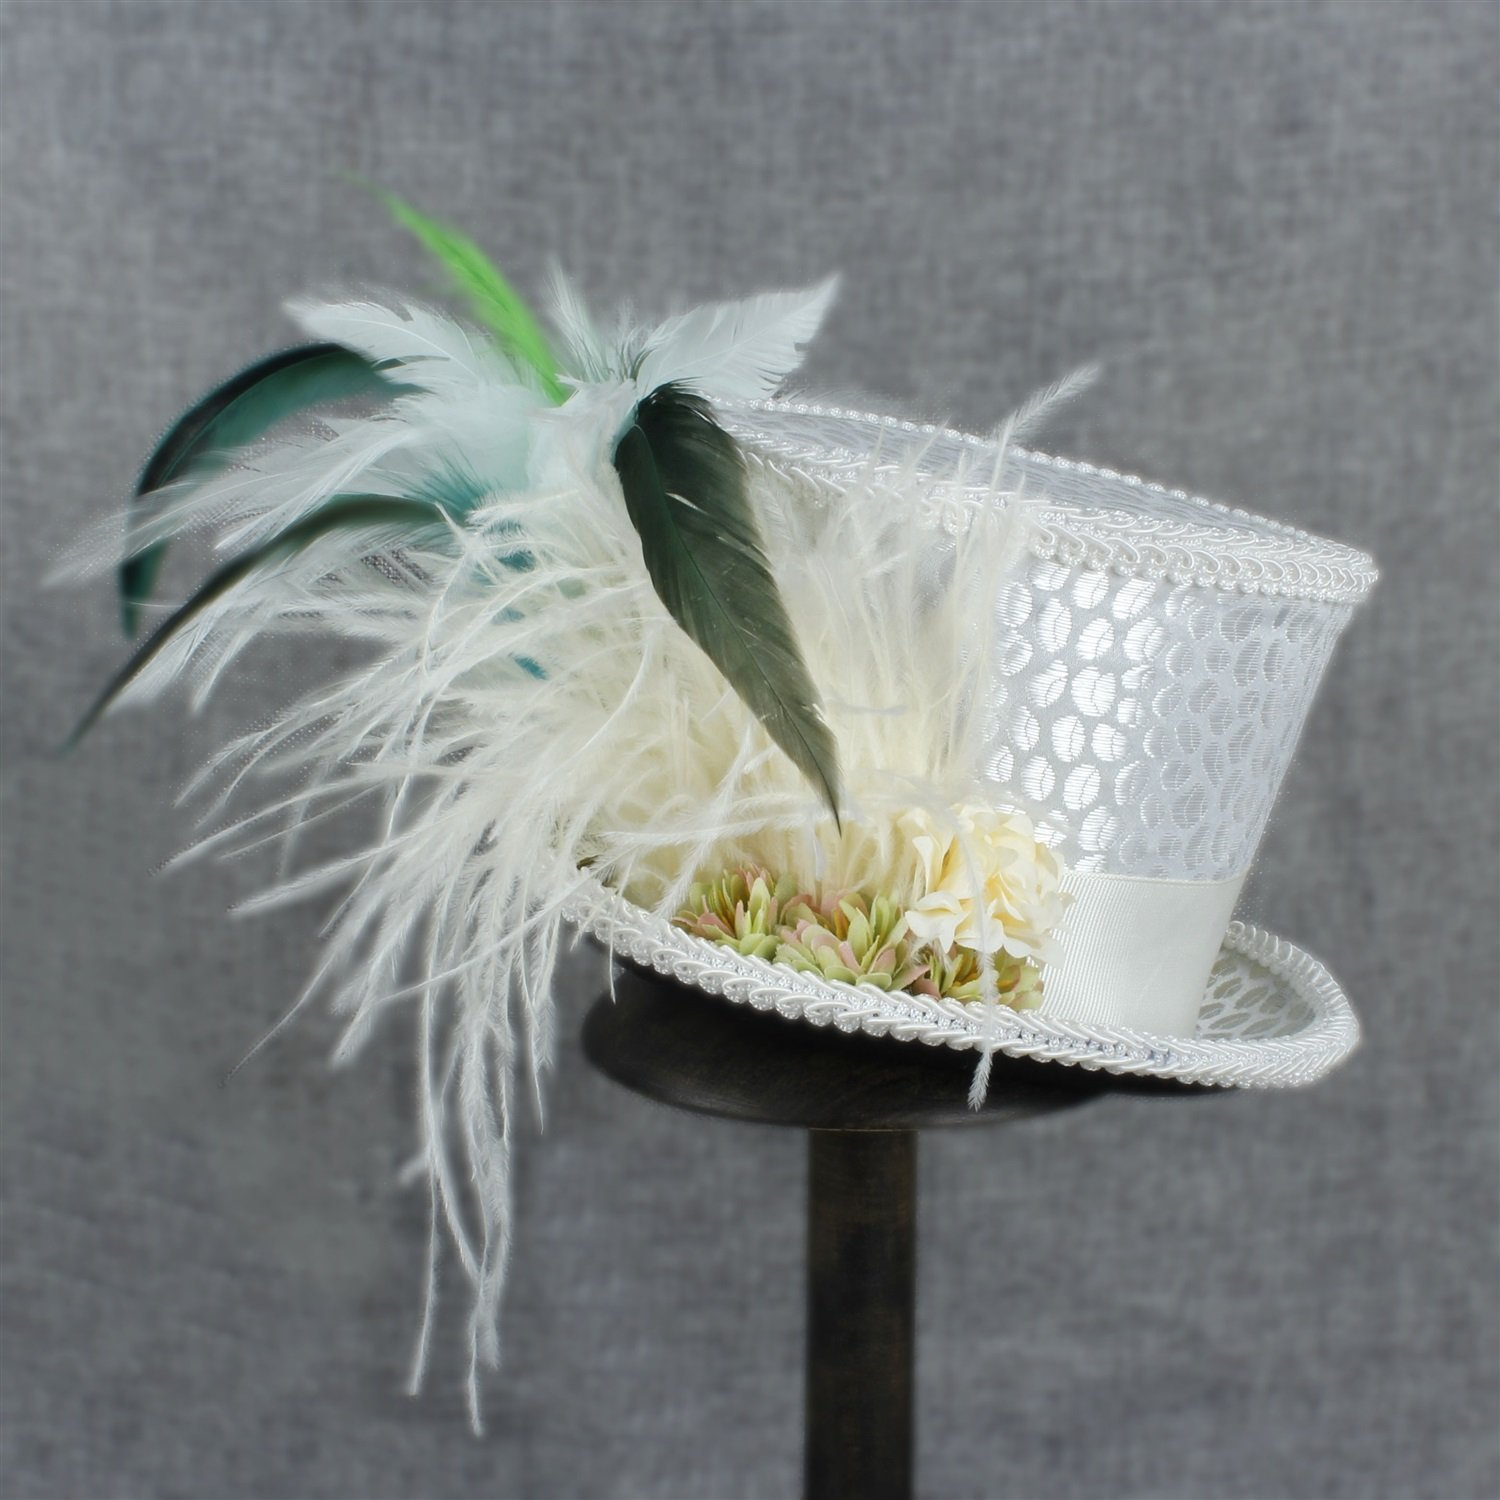 LL Women's White Mini Top Hat Tea Hat Mad Hatter Tea hat, Bridal Hat, Kentucky Derby hat (Color : White, Size : 25-30cm) by LL (Image #6)